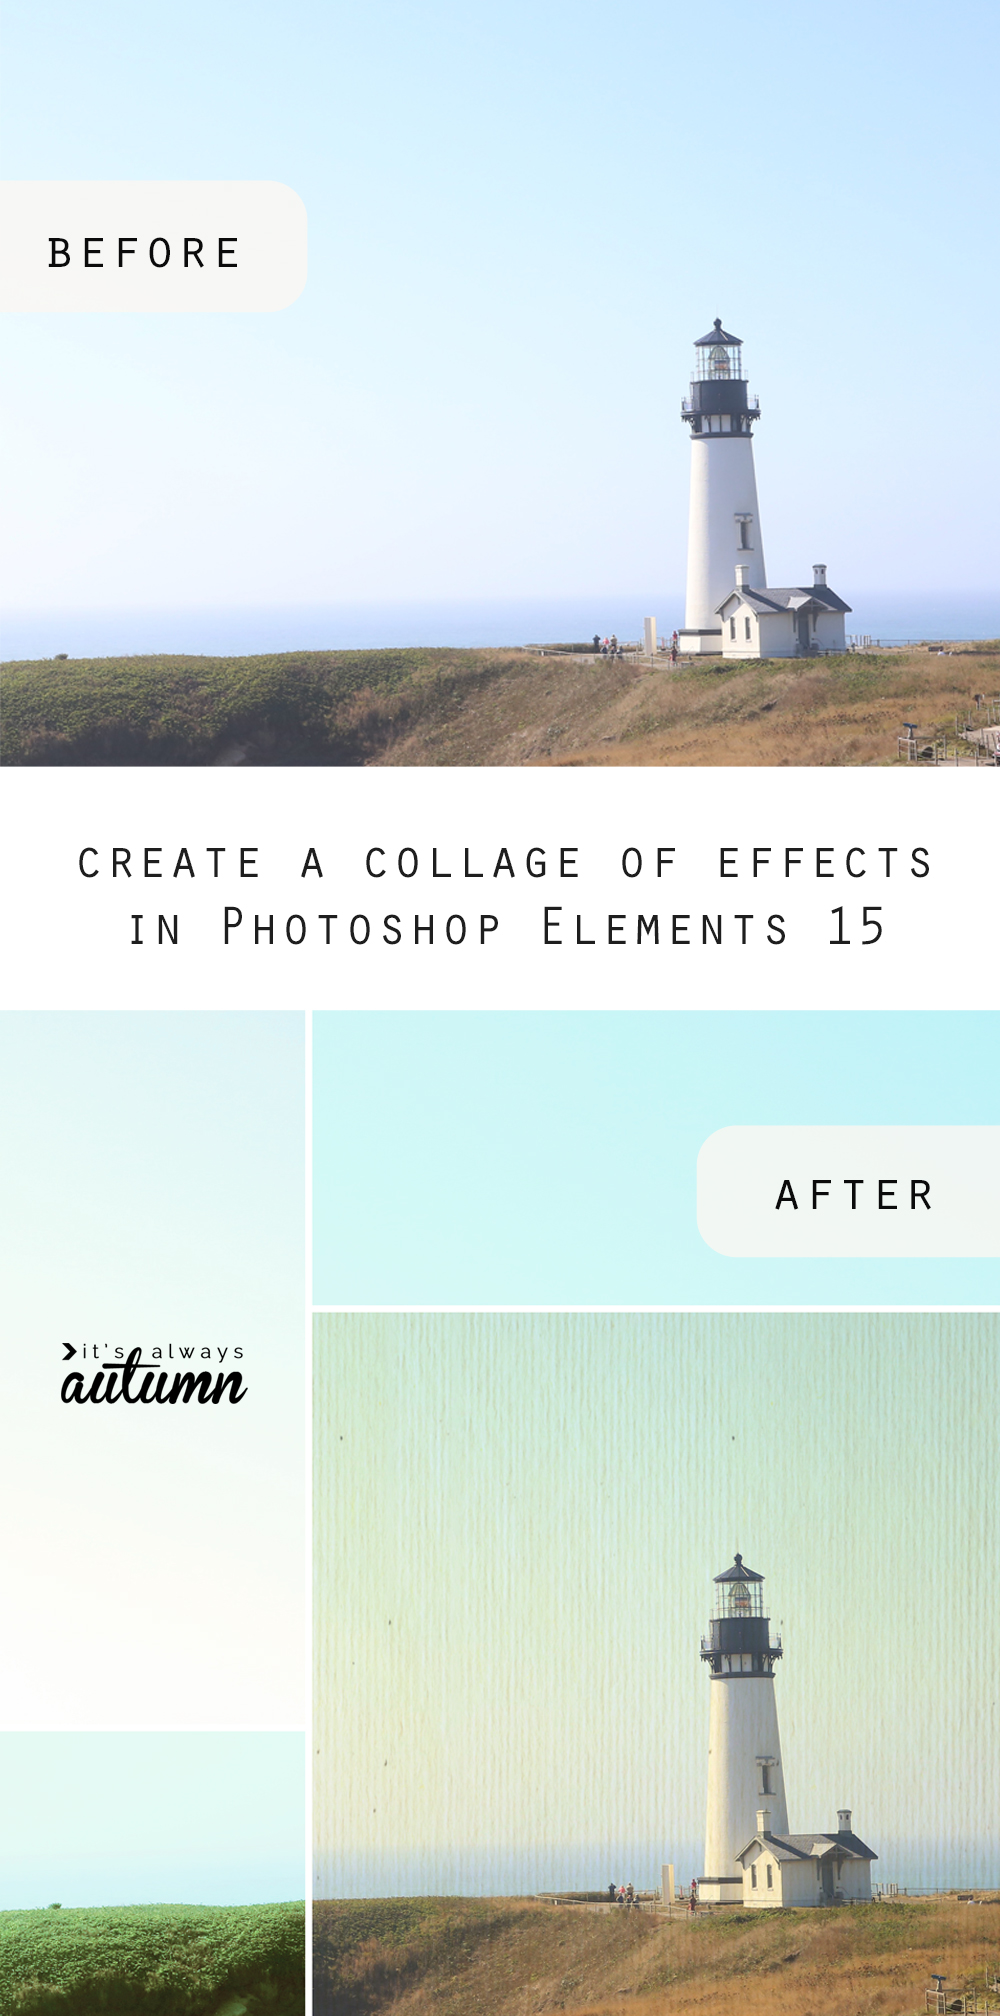 Add cool collage effects in just a few clicks to your photos using Photoshop Elements 15. Fun photo edits and editing tips.